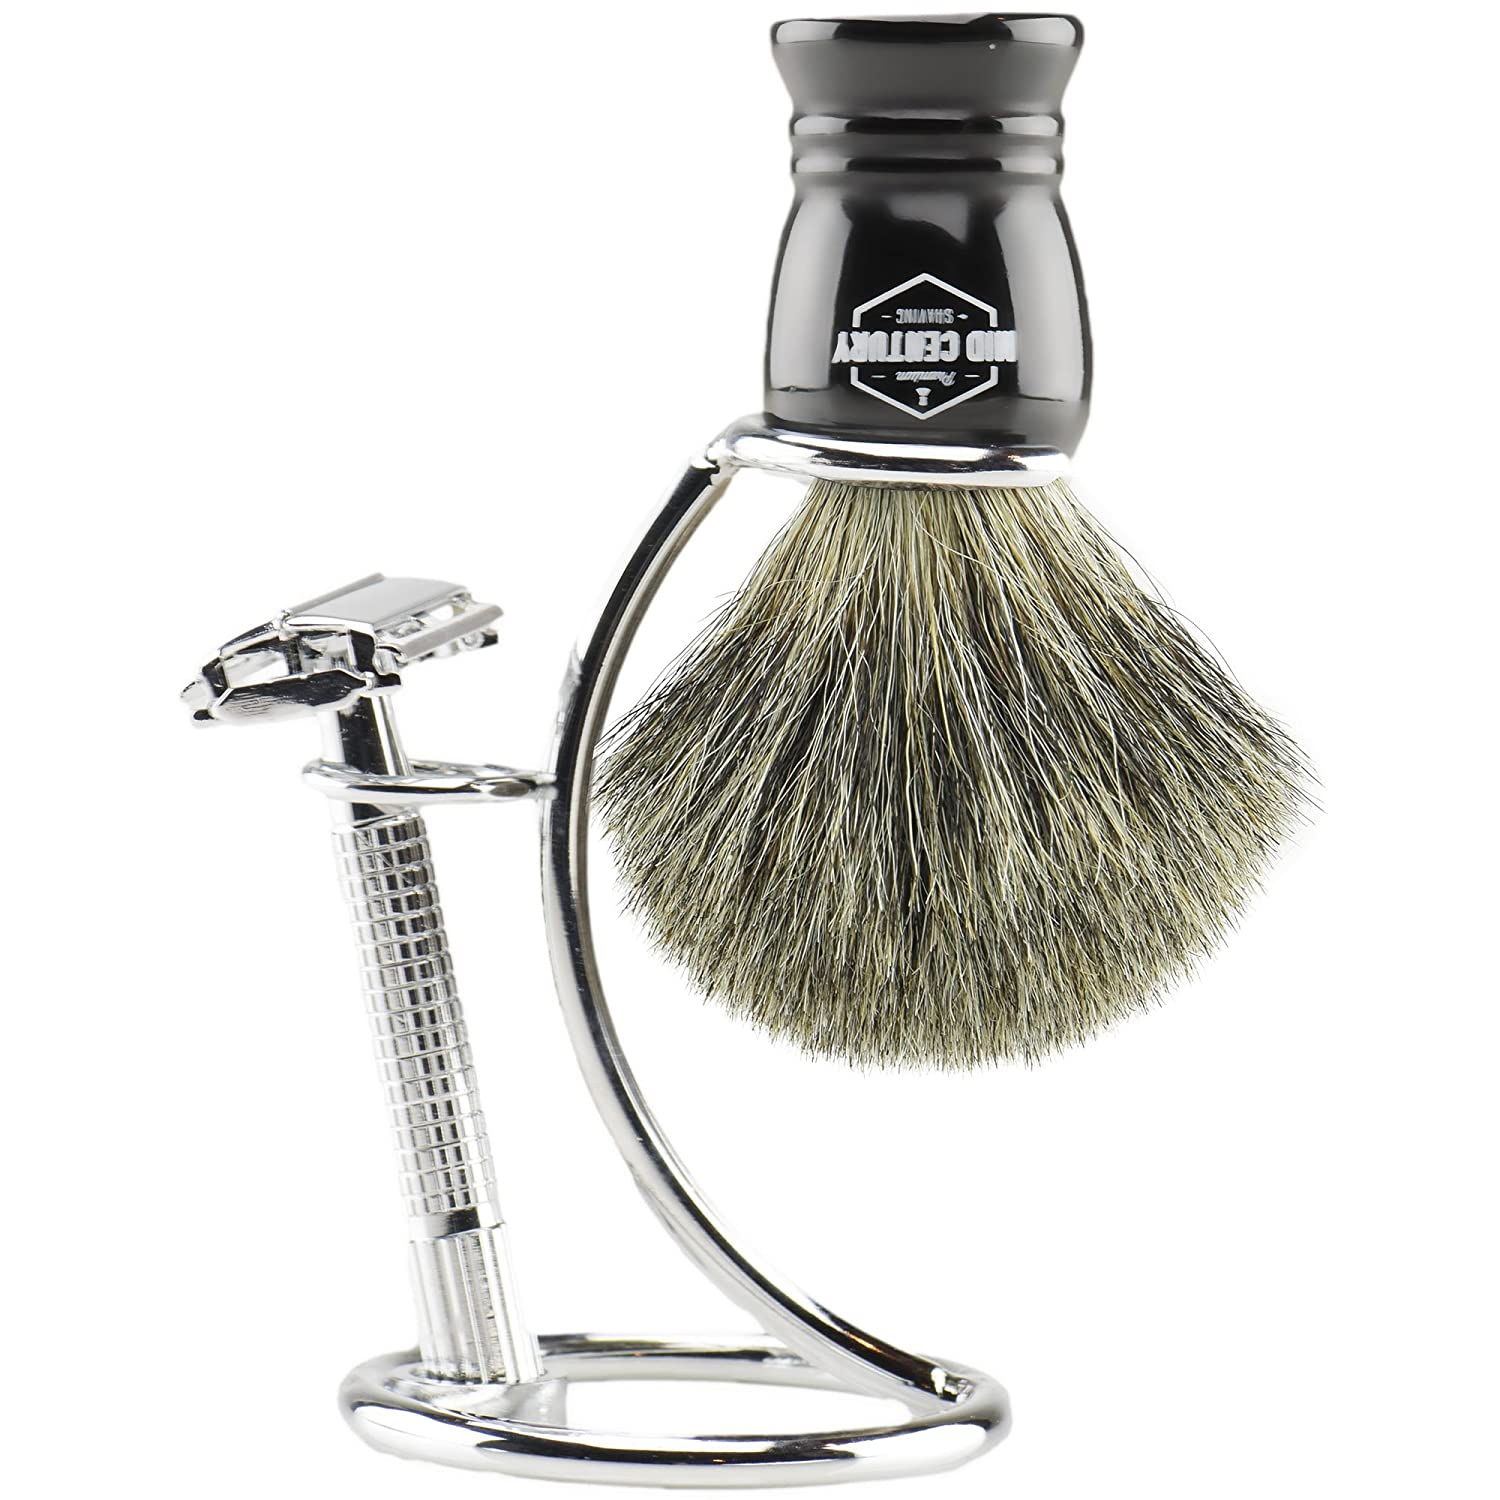 MCS Premium Safety Razor Shaving Kit: Complete Wet Shave Set w/Double Edge Razor, Pure Badger Brush, Heavy Chrome Stand, Travel Case, Extra Blades & Gift Box (Black)